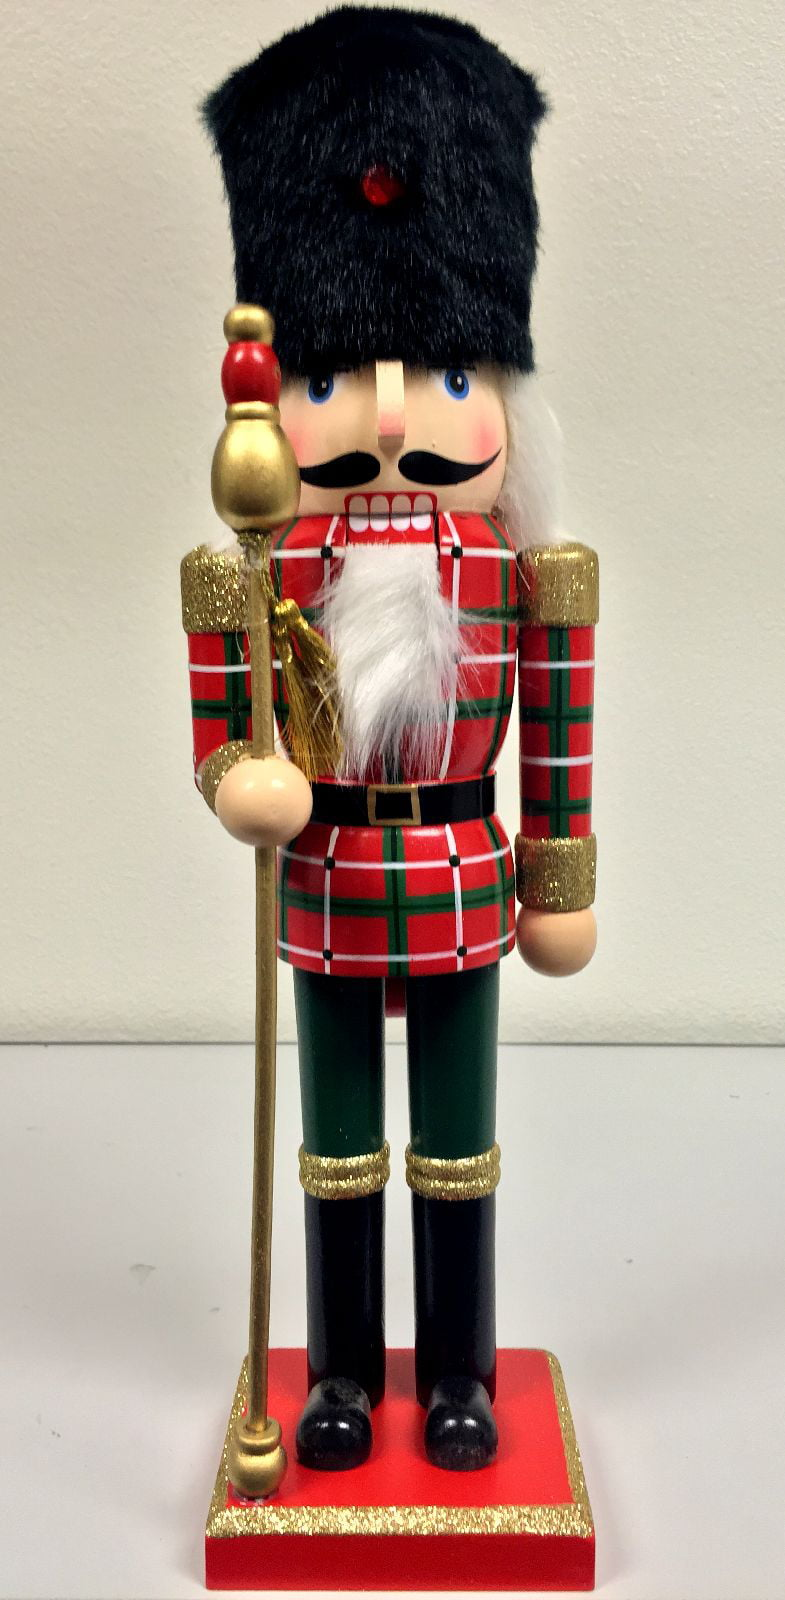 Black Fur Hat Soldier Guard Wooden Christmas Nutcracker 14 Inch ...